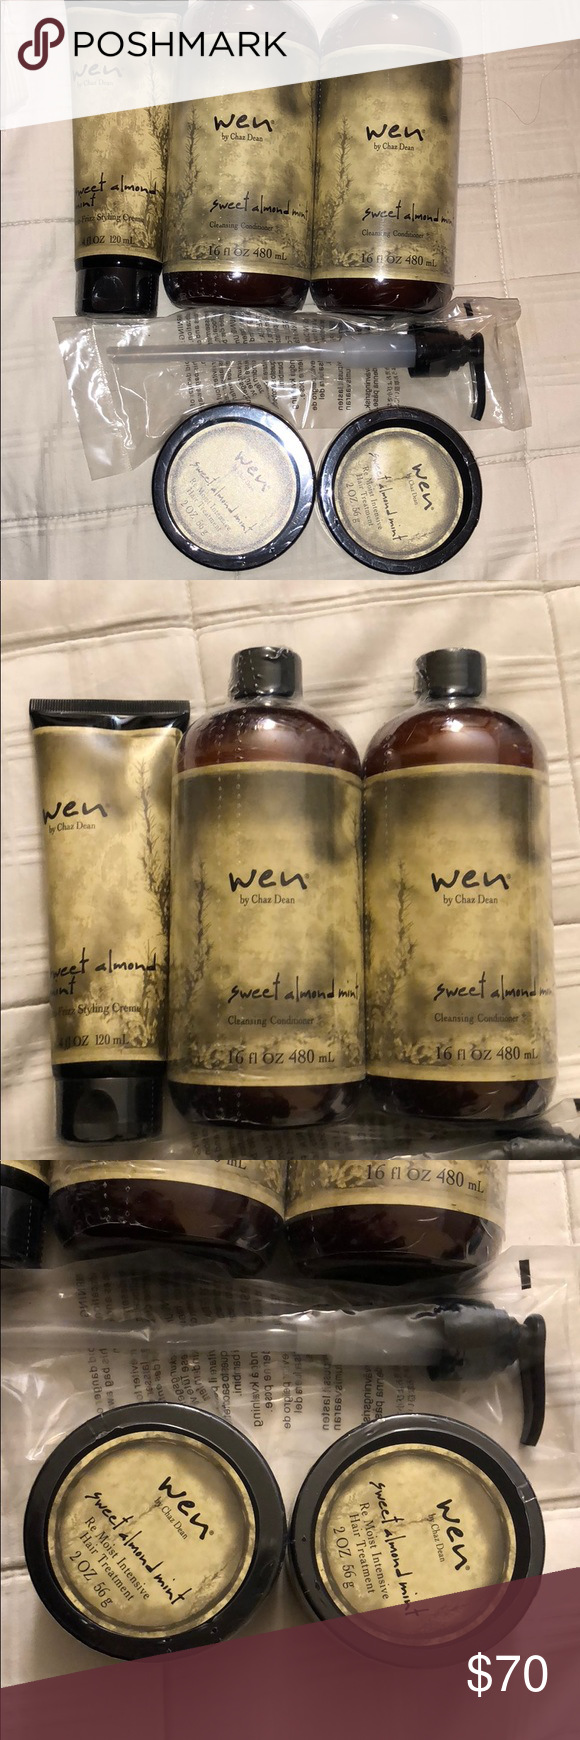 Brand new Wen hair care set 2 sweet almond mint flavored